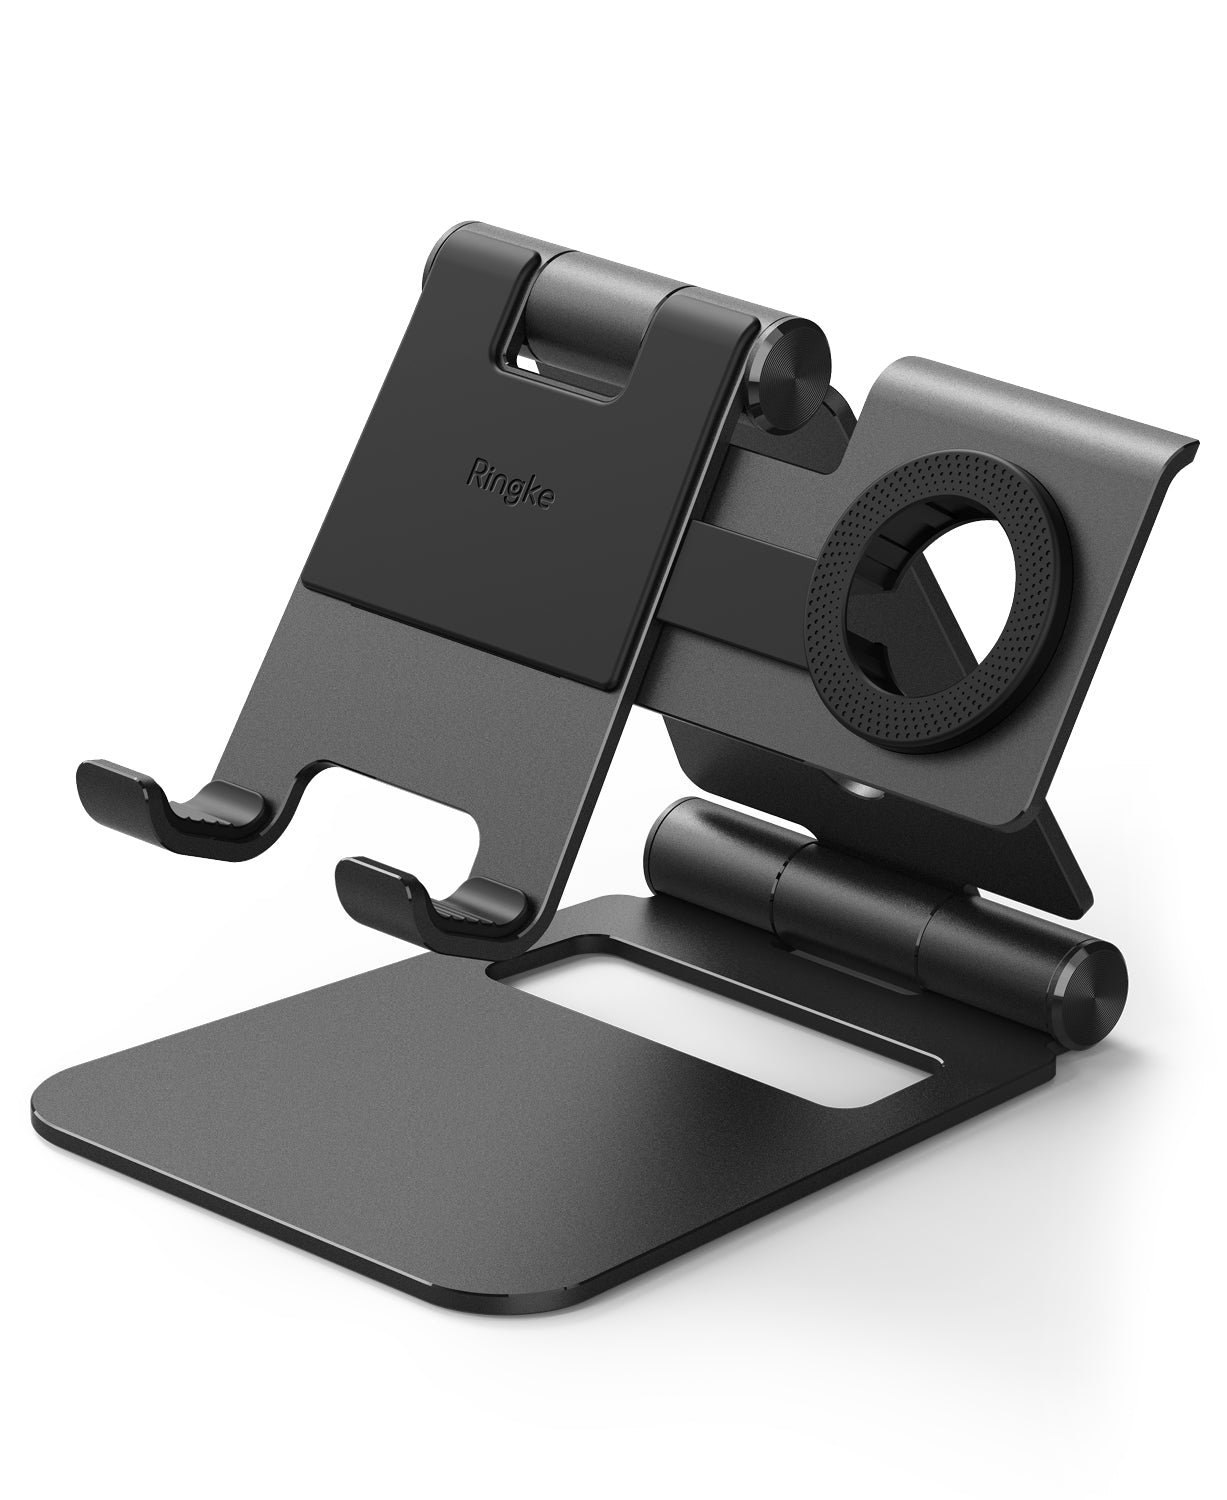 Ringke Super Folding Stand for apple watch